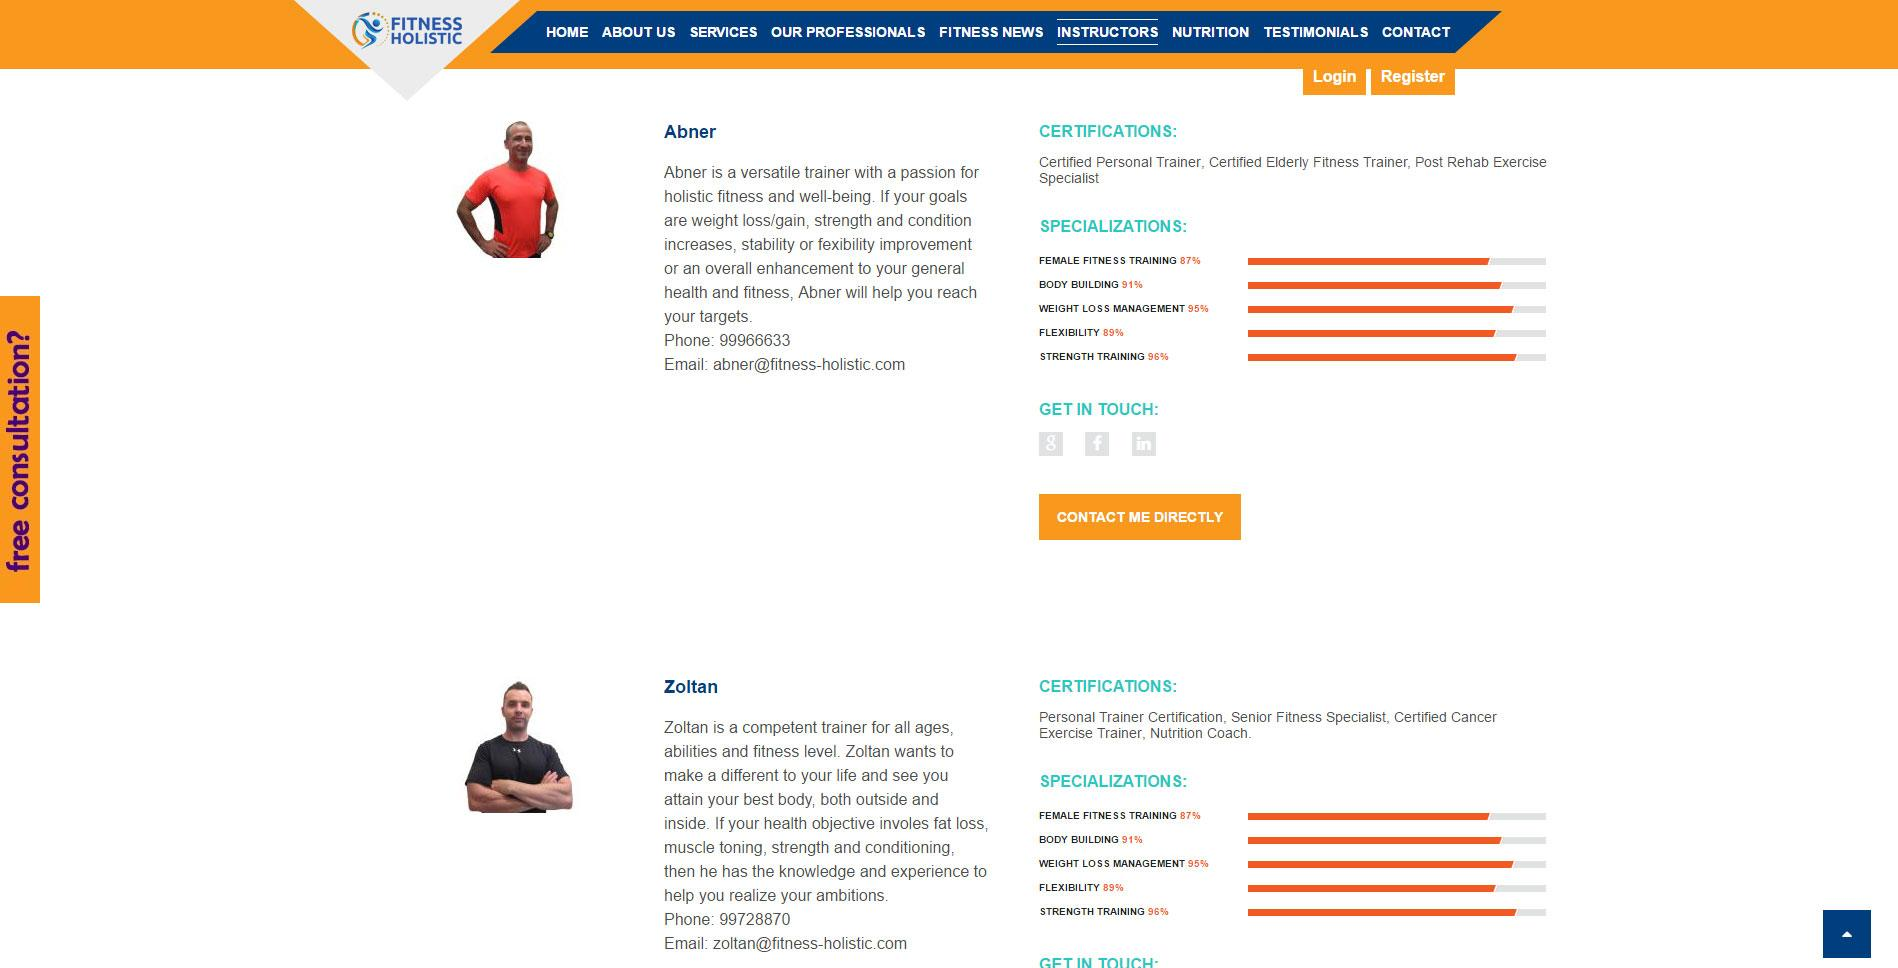 Cancer Exercise Specialist